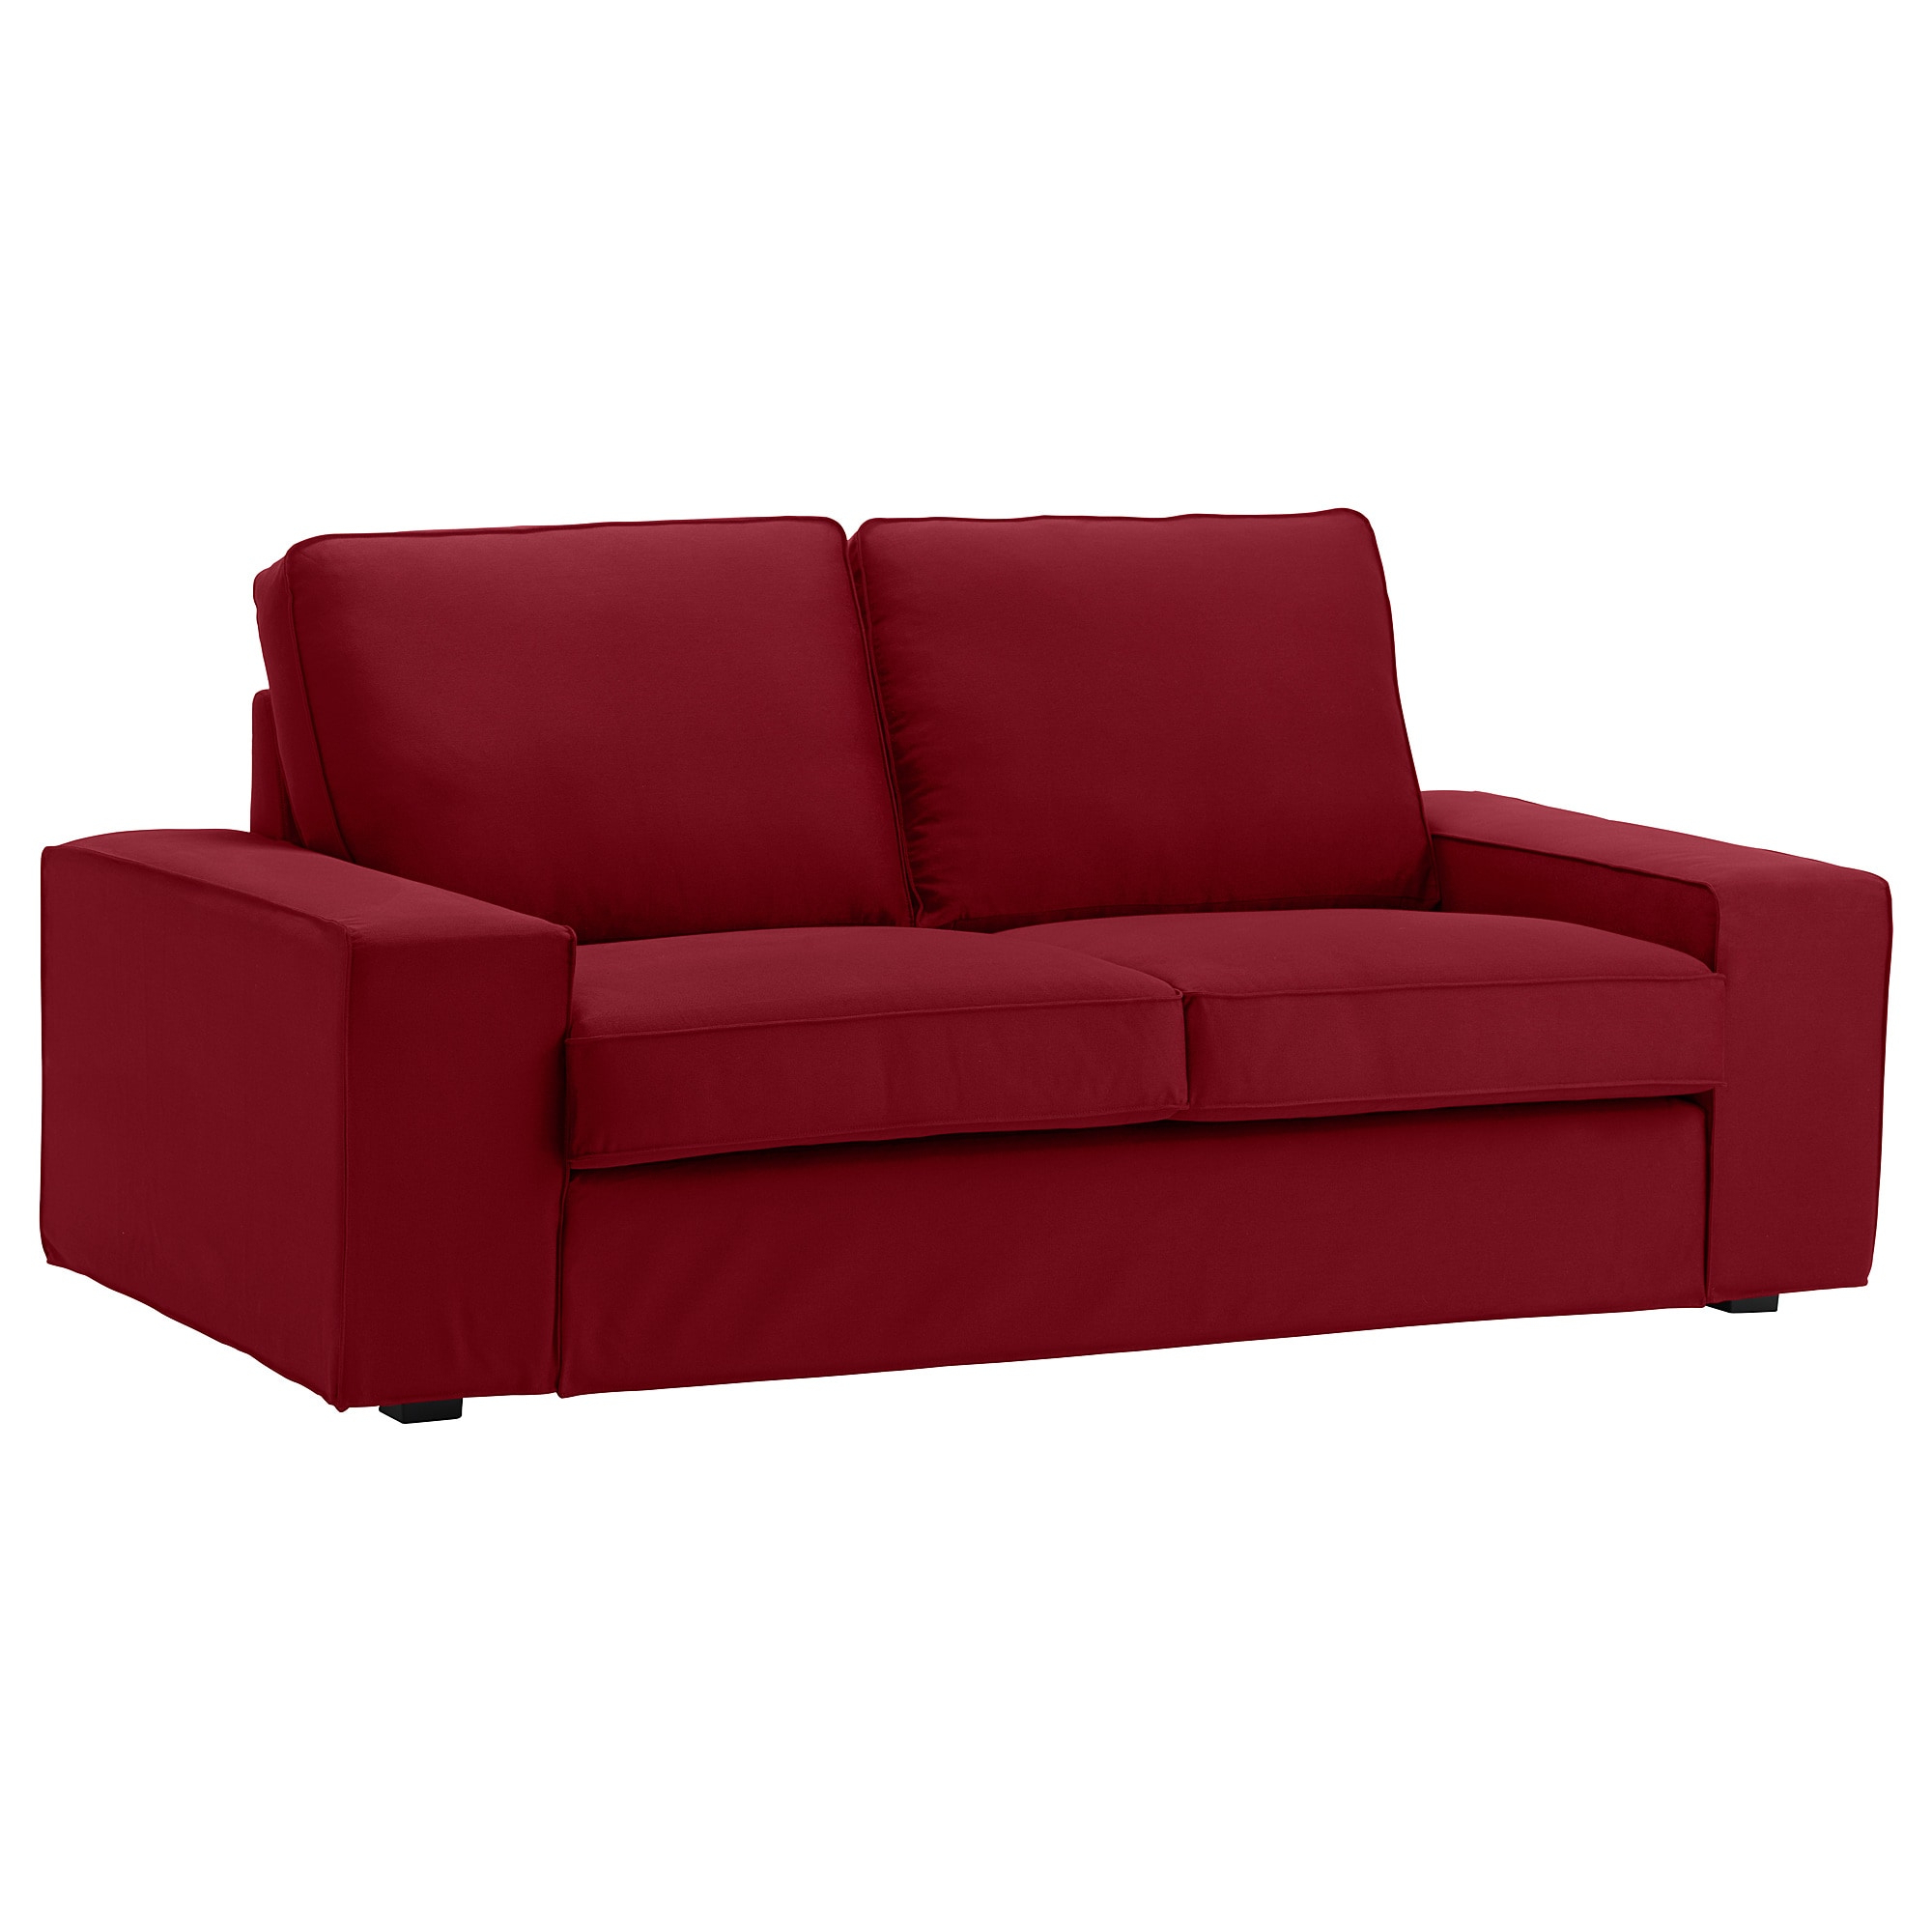 Ikea For Popular Red Sofas And Chairs (View 20 of 20)